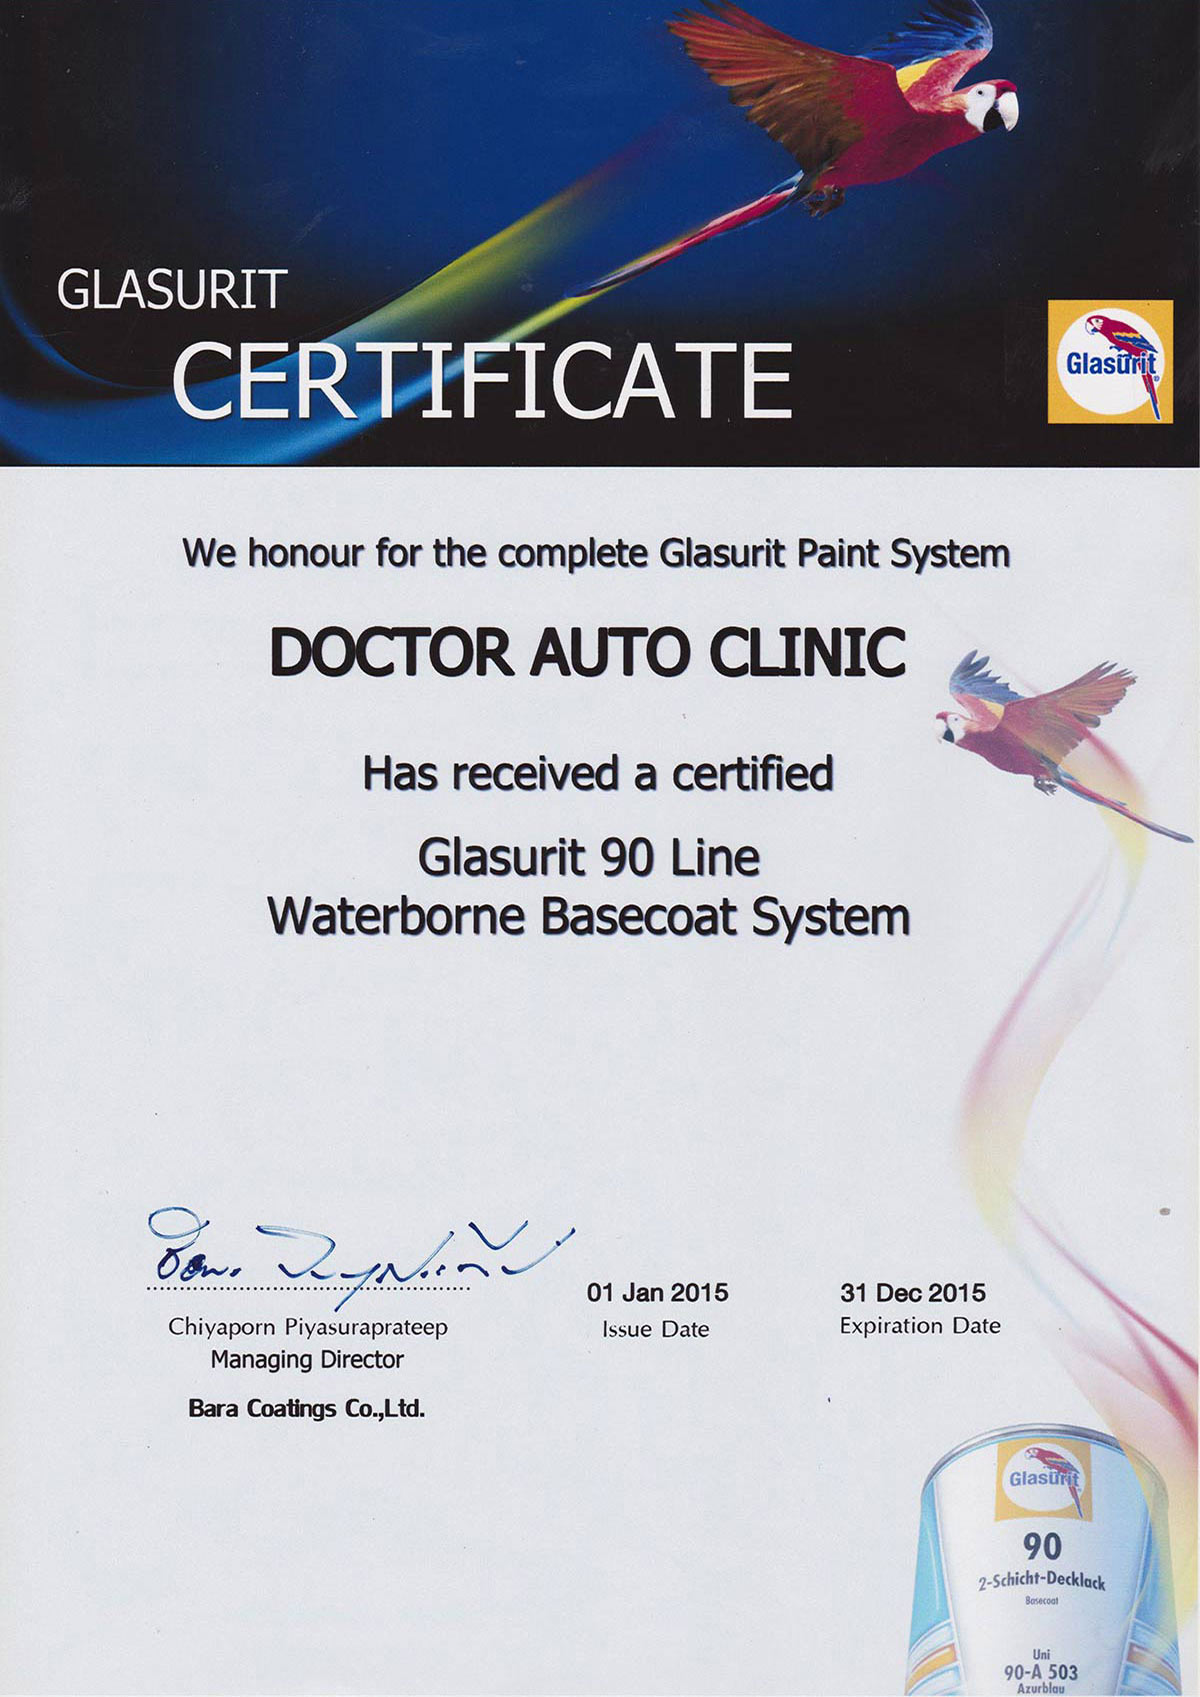 Glasurit Certificate